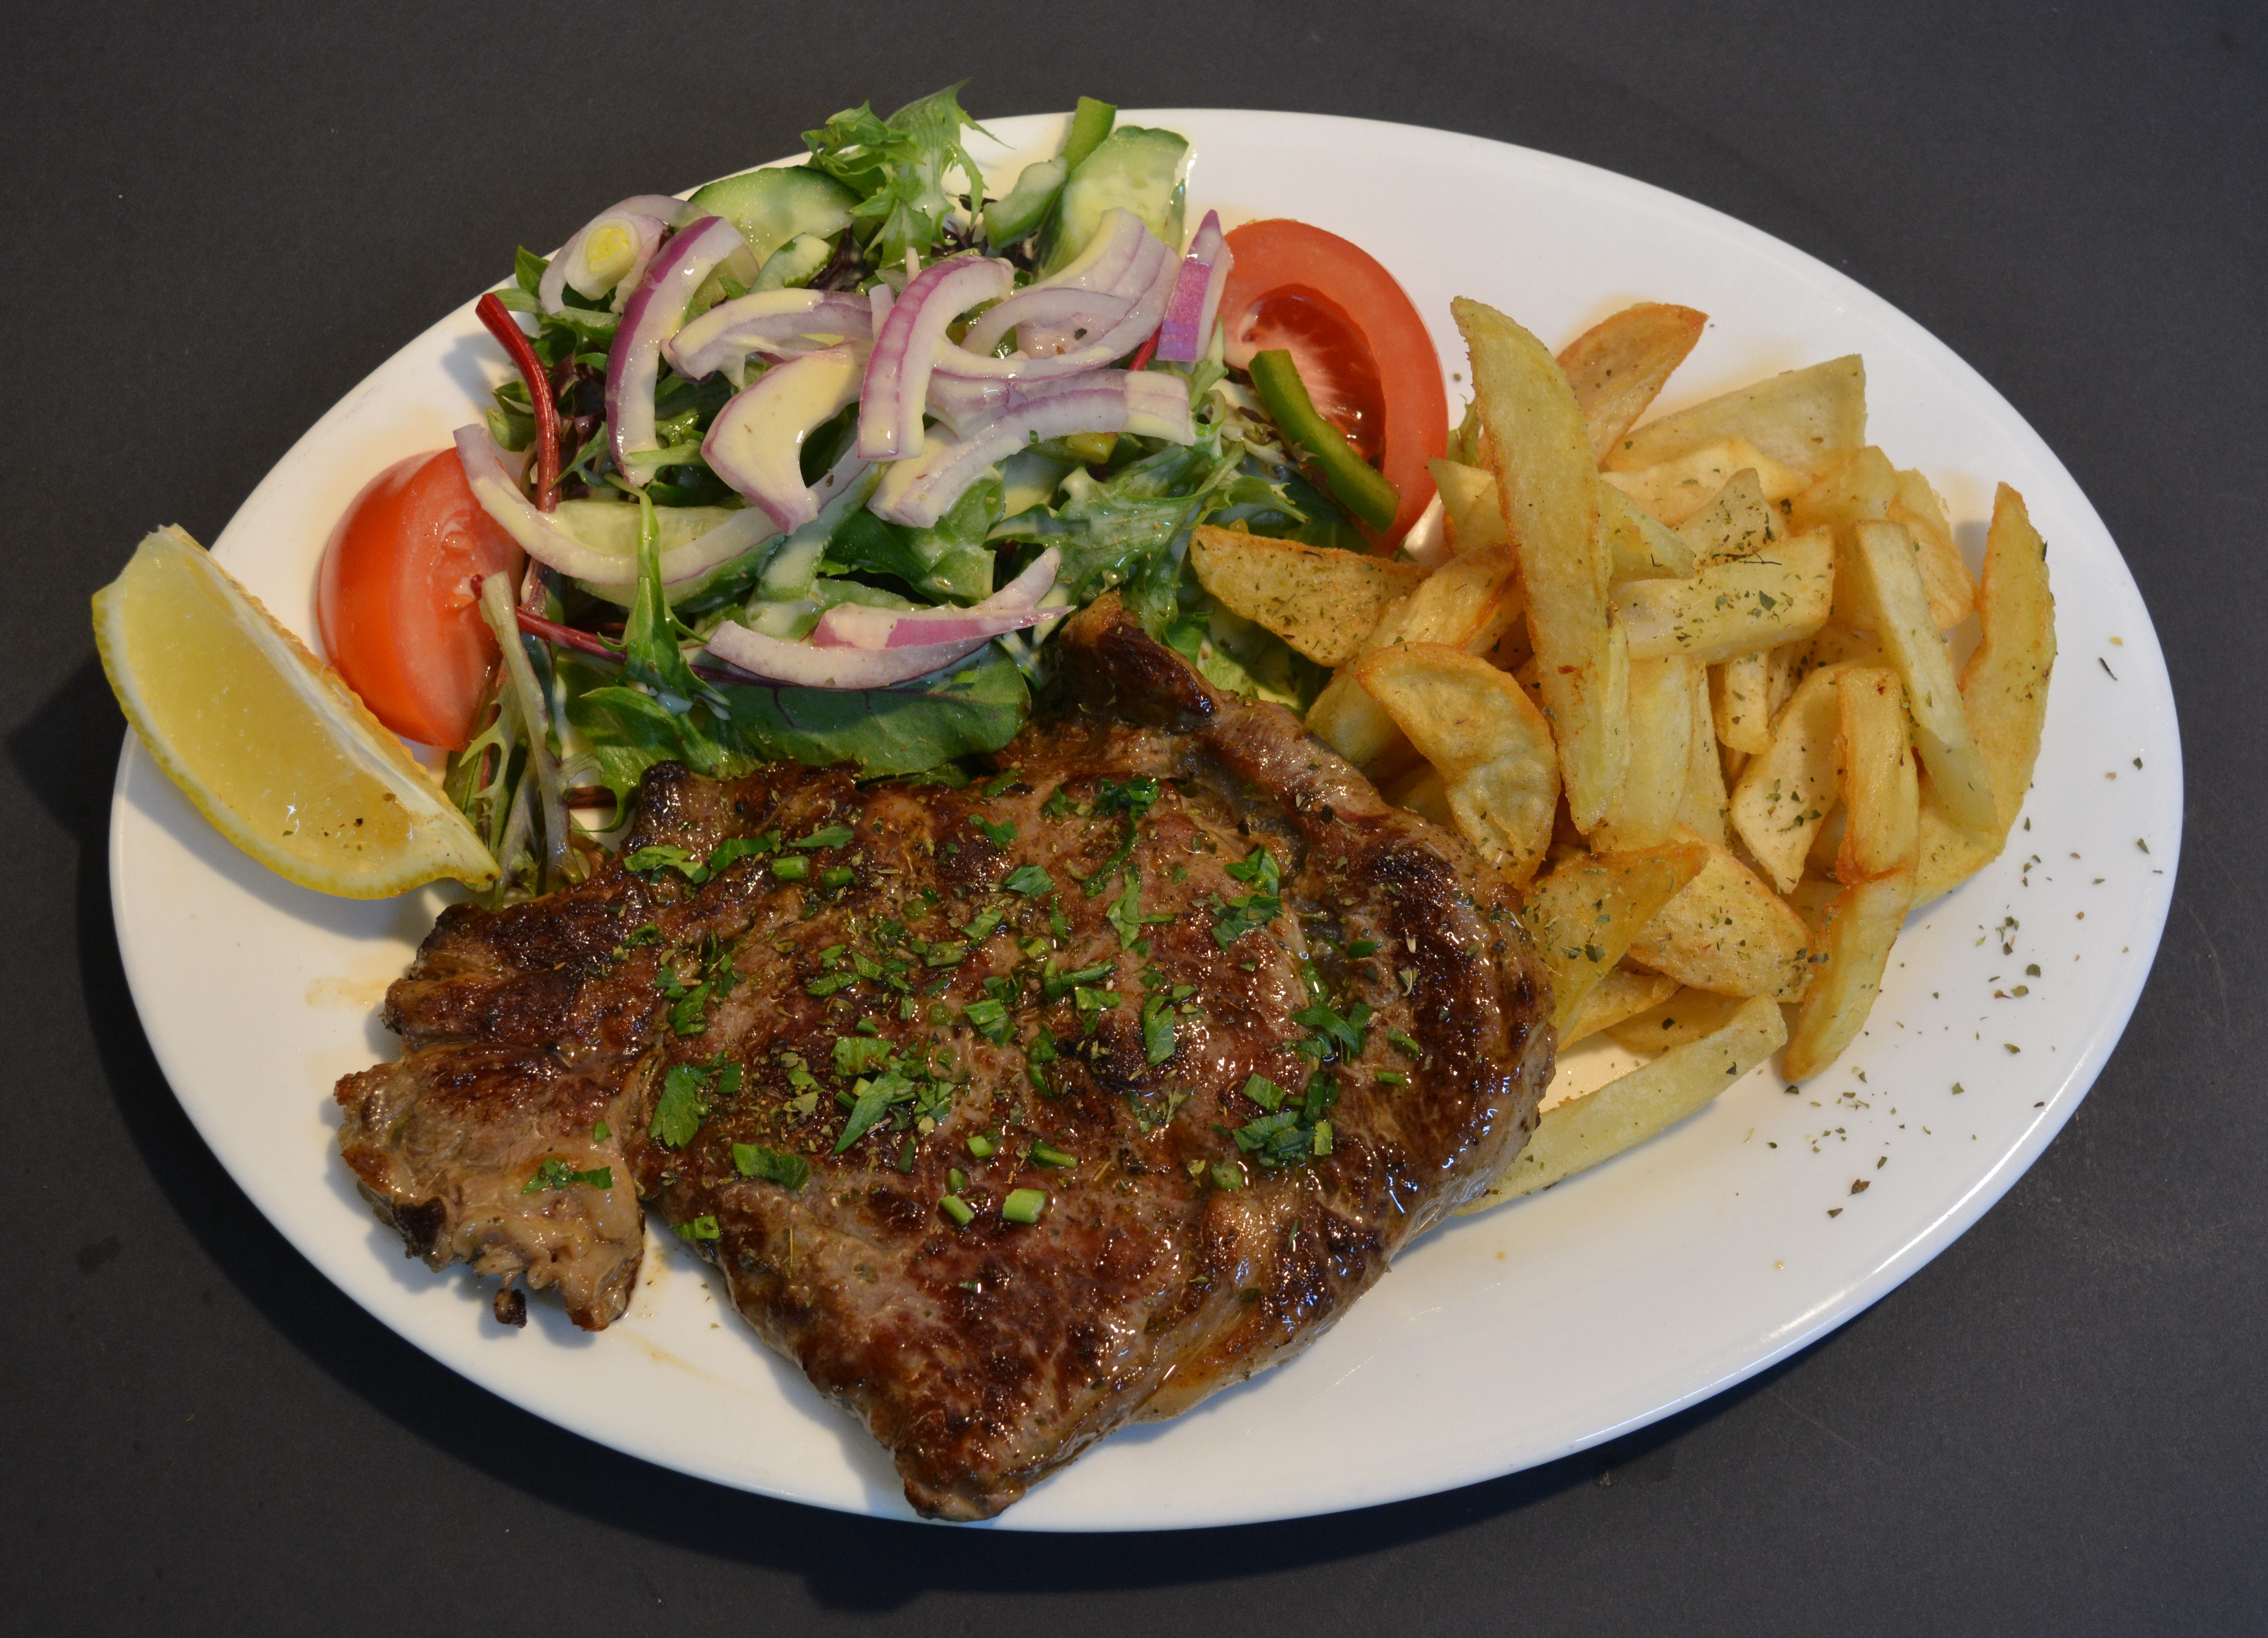 Grilled Beef Cutlets served with homemade chips and salad.